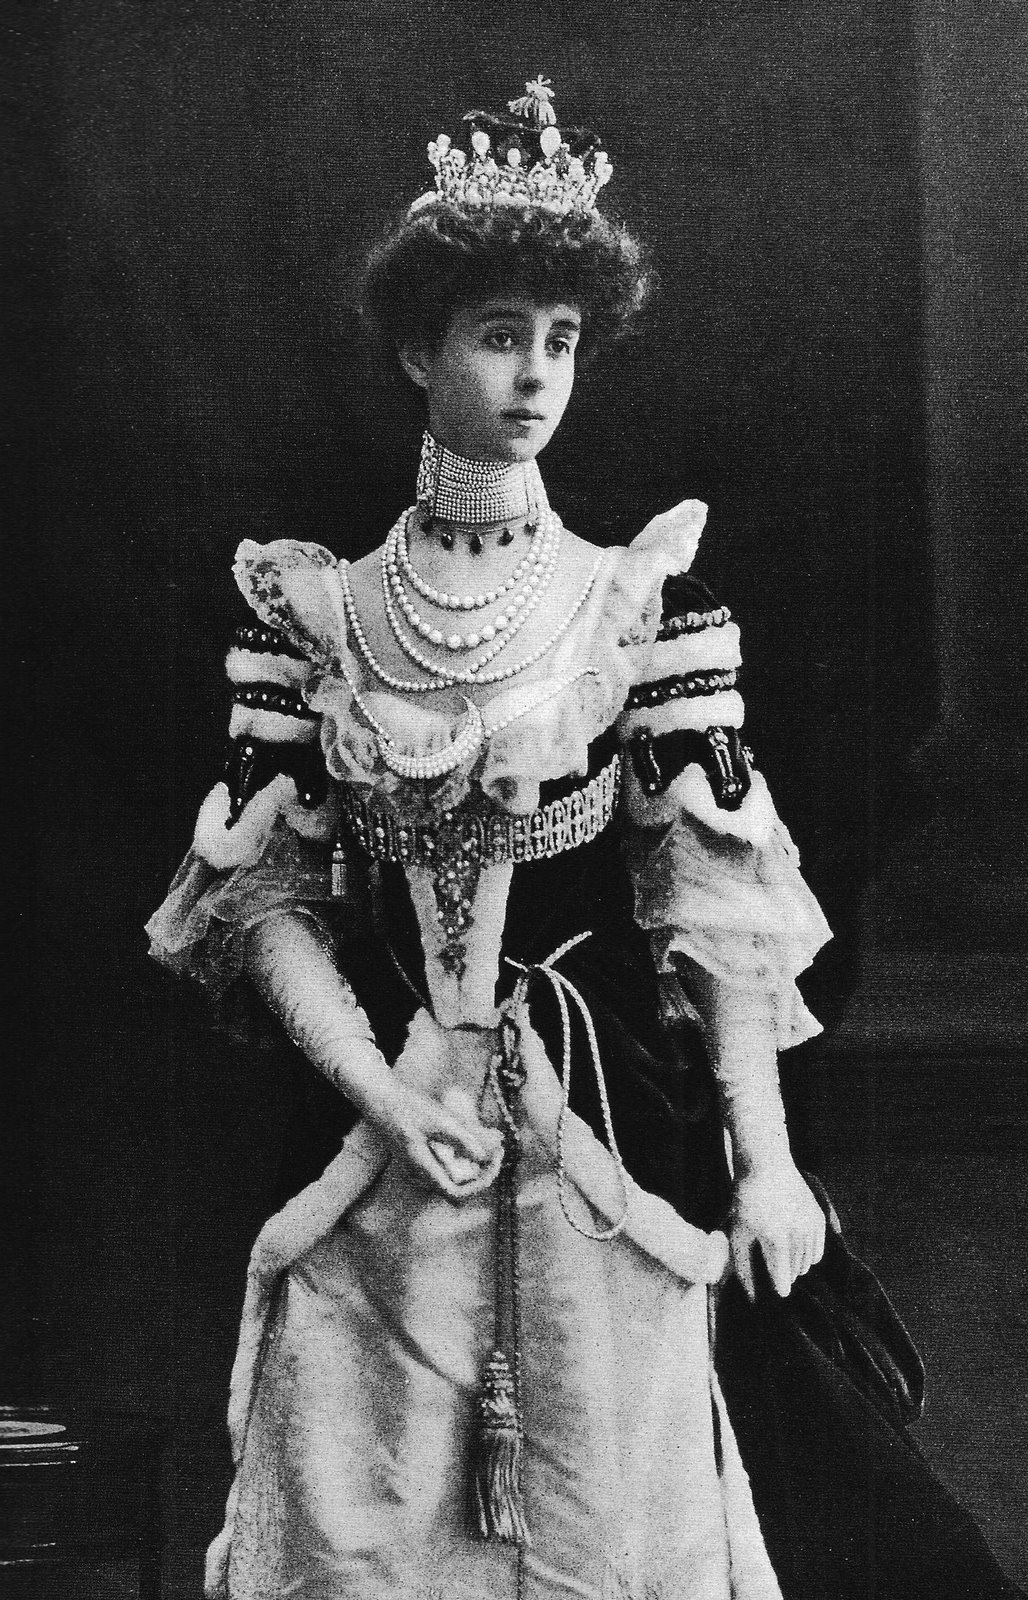 1902 Consuelo Vanderbilt piling on pearls; tiara set with 1091